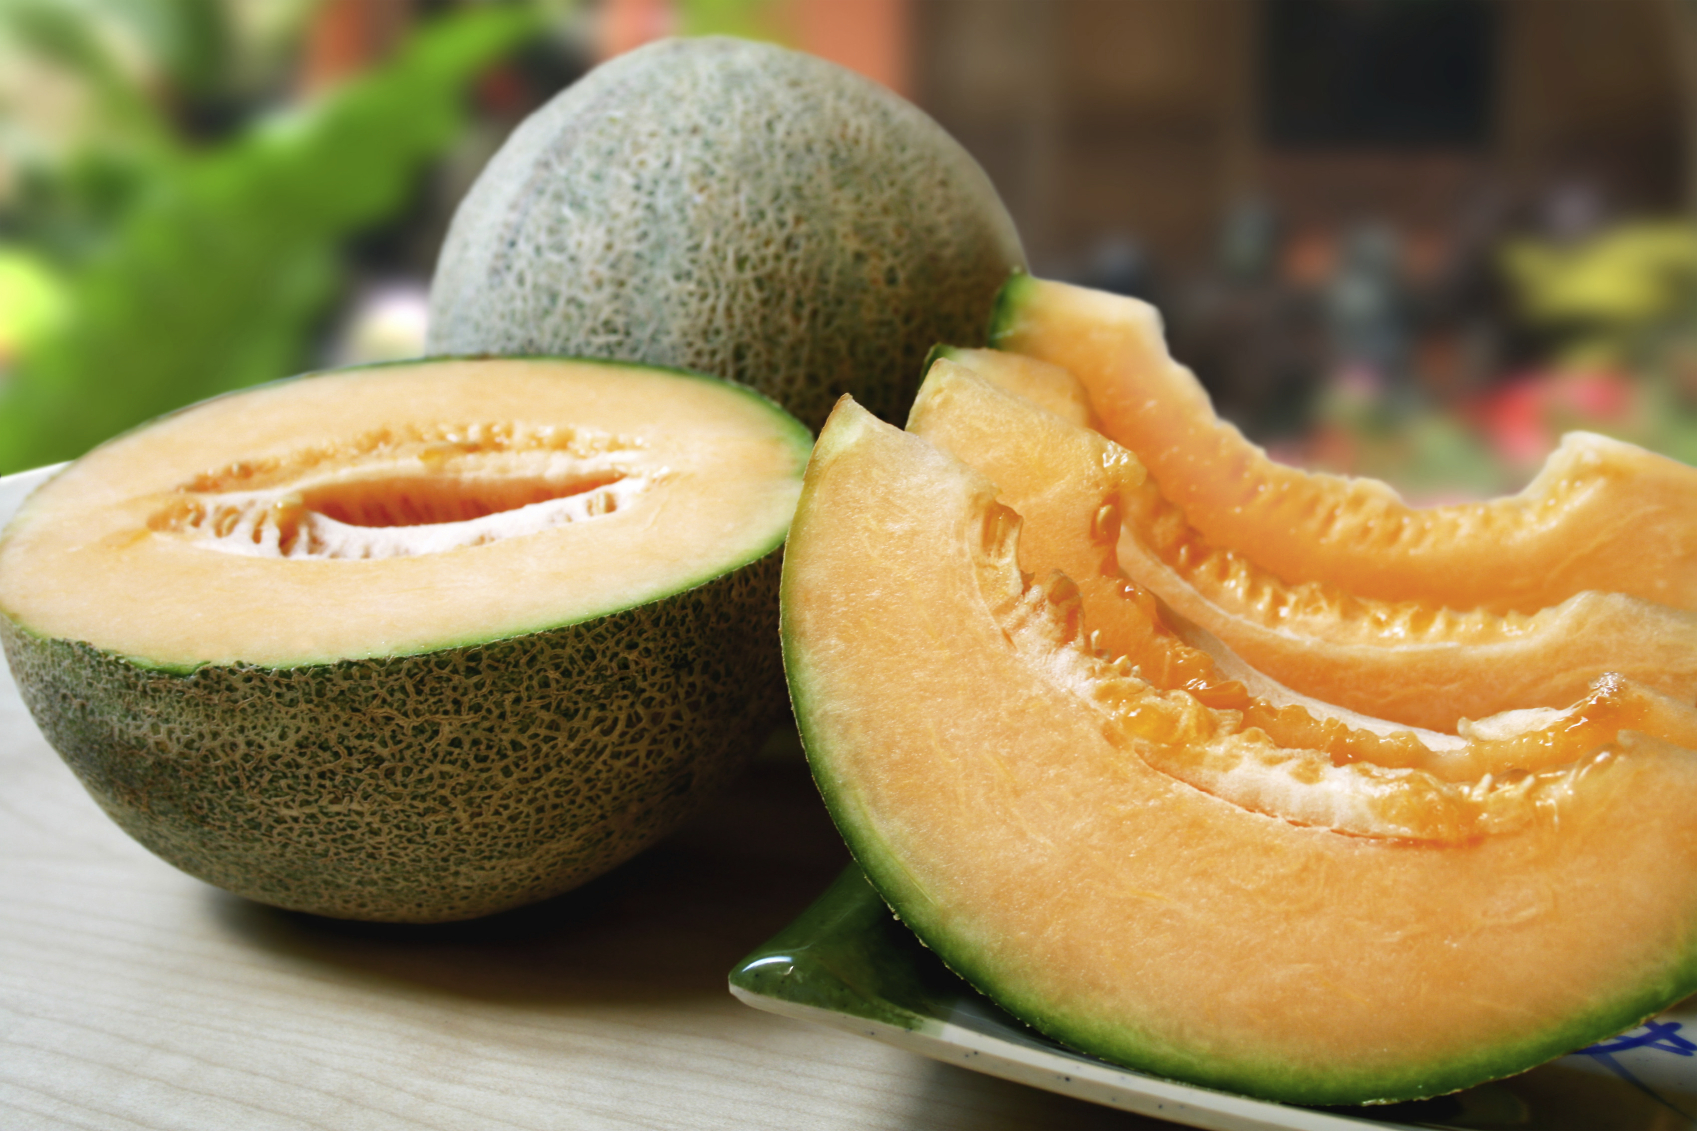 The question of filling: melon - a berry or a fruit